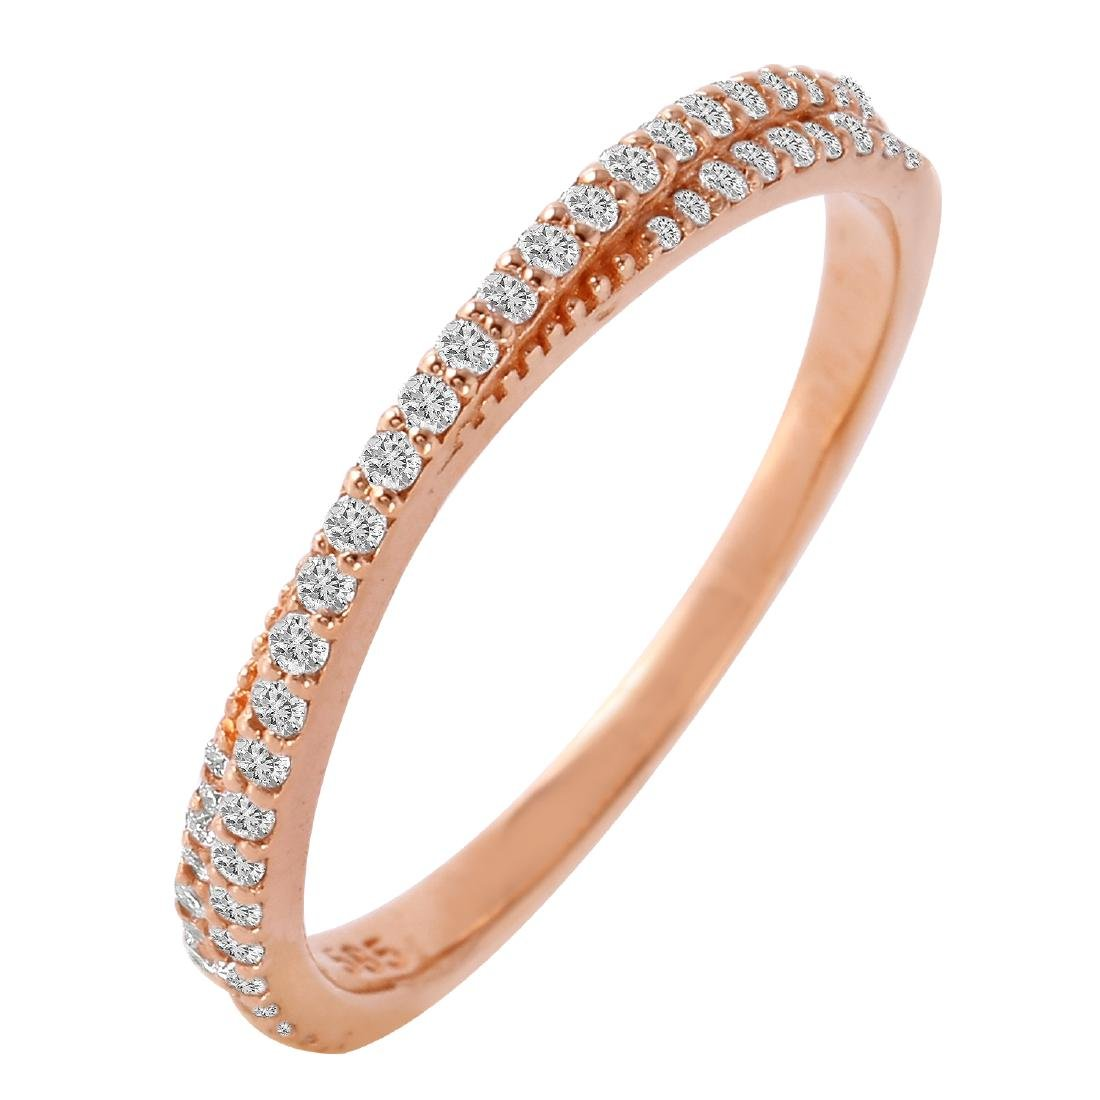 0.25 Carat Natural Diamond 18K Solid Rose Gold Ring